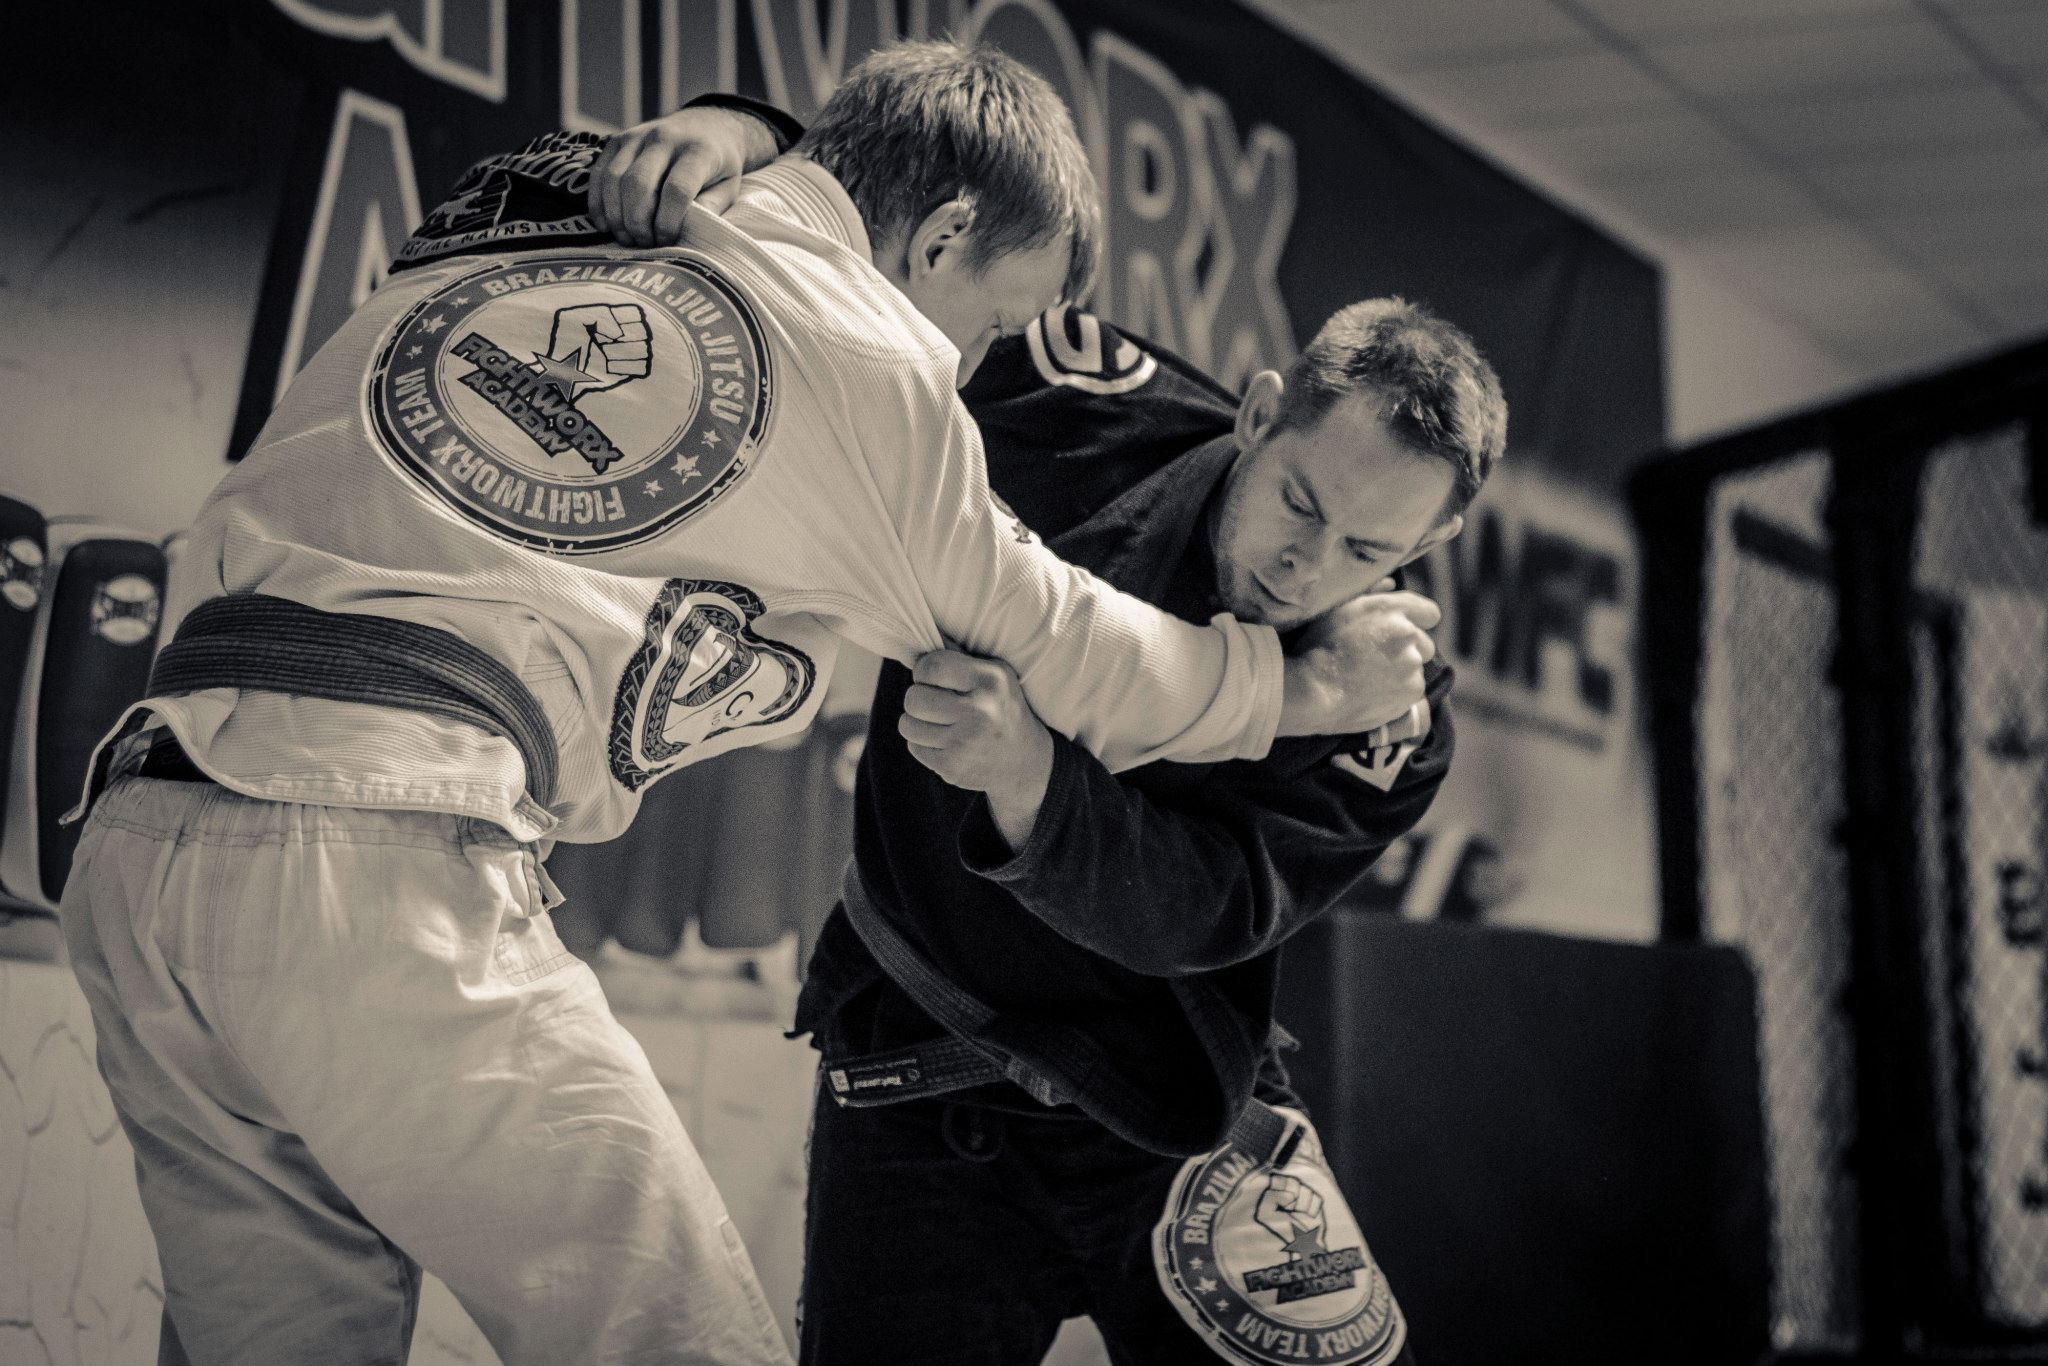 Head Instructor Darren Yeoman setting up the throw. BJJ covers stand up grappling techniques similar to Judo